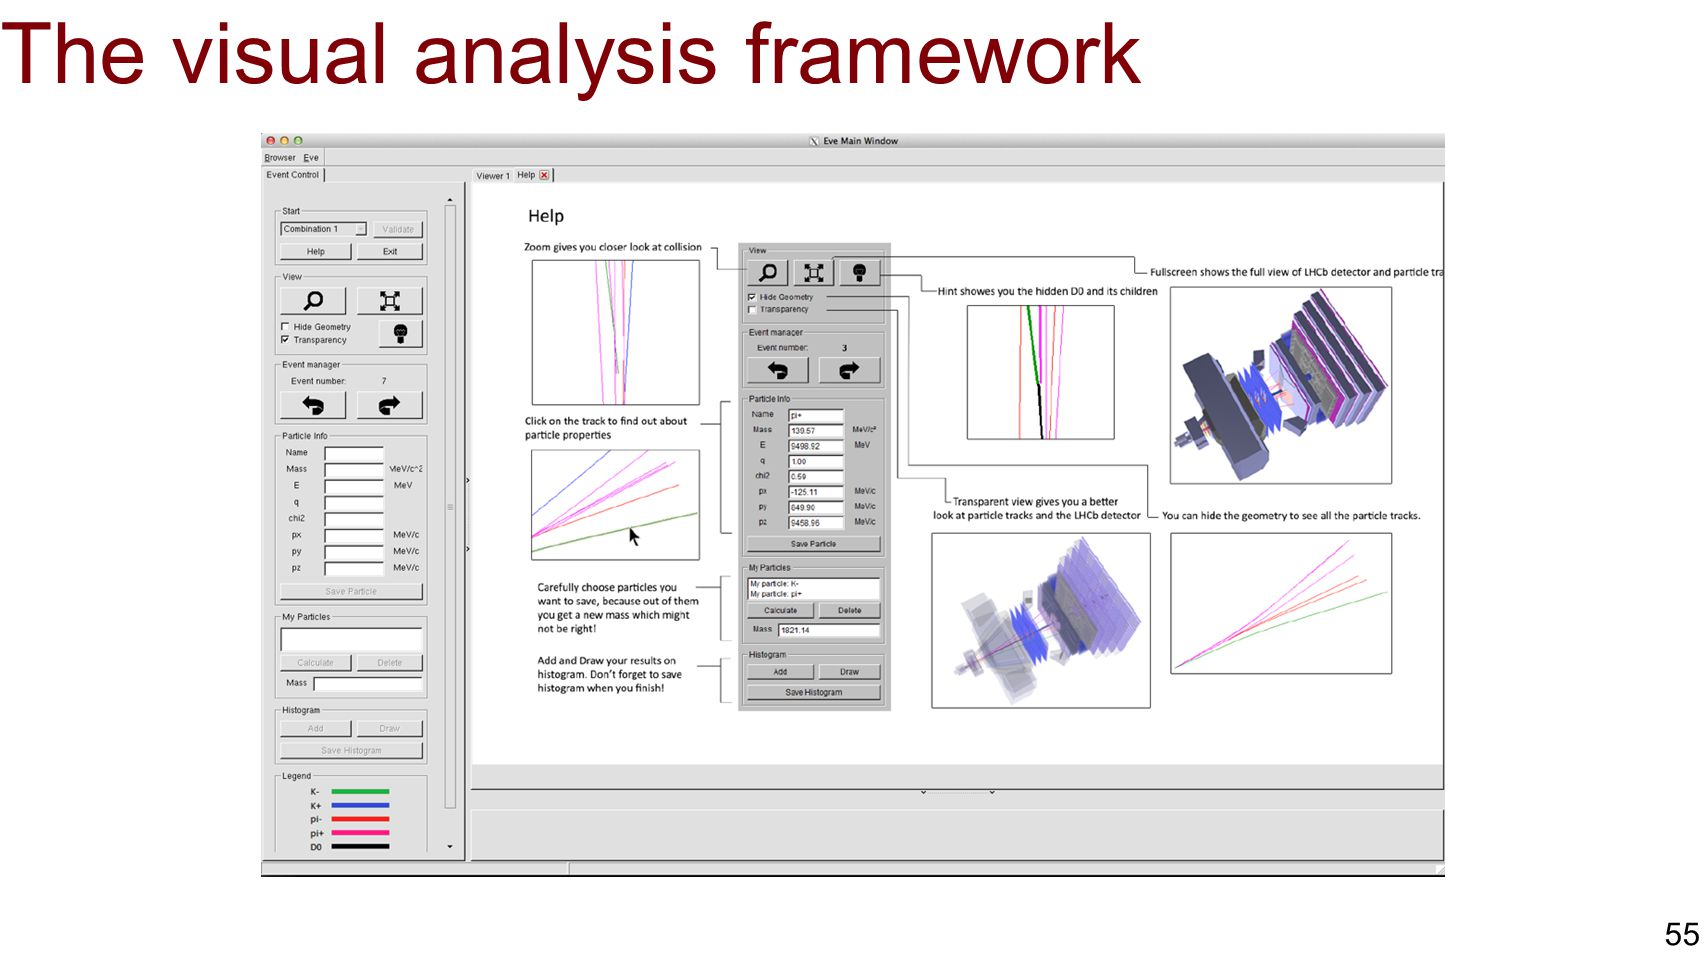 The visual analysis framework